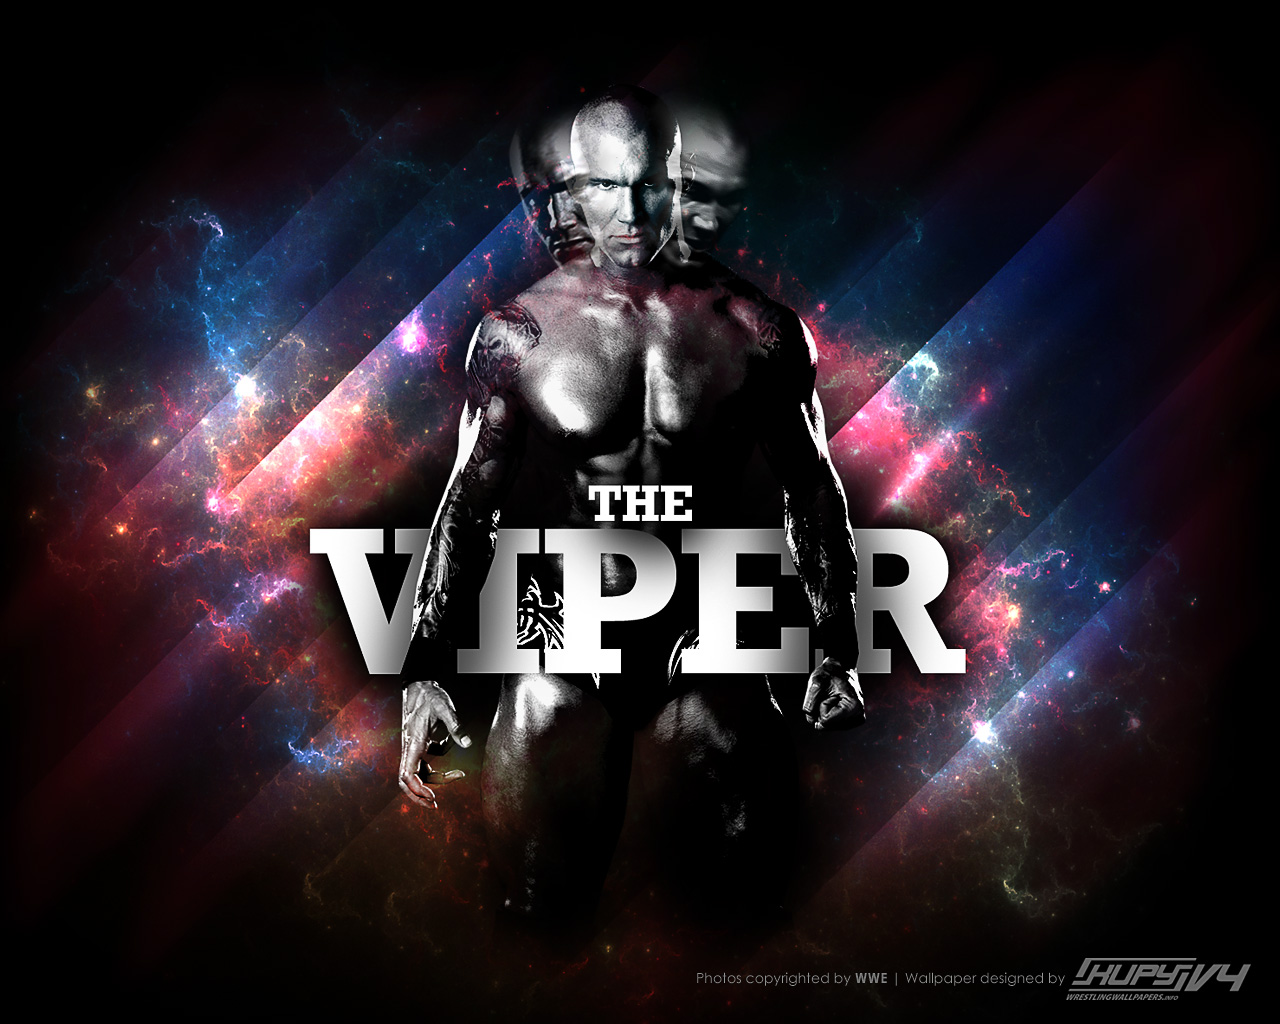 Randy Orton Viper Wallpapers | Top Web Pics